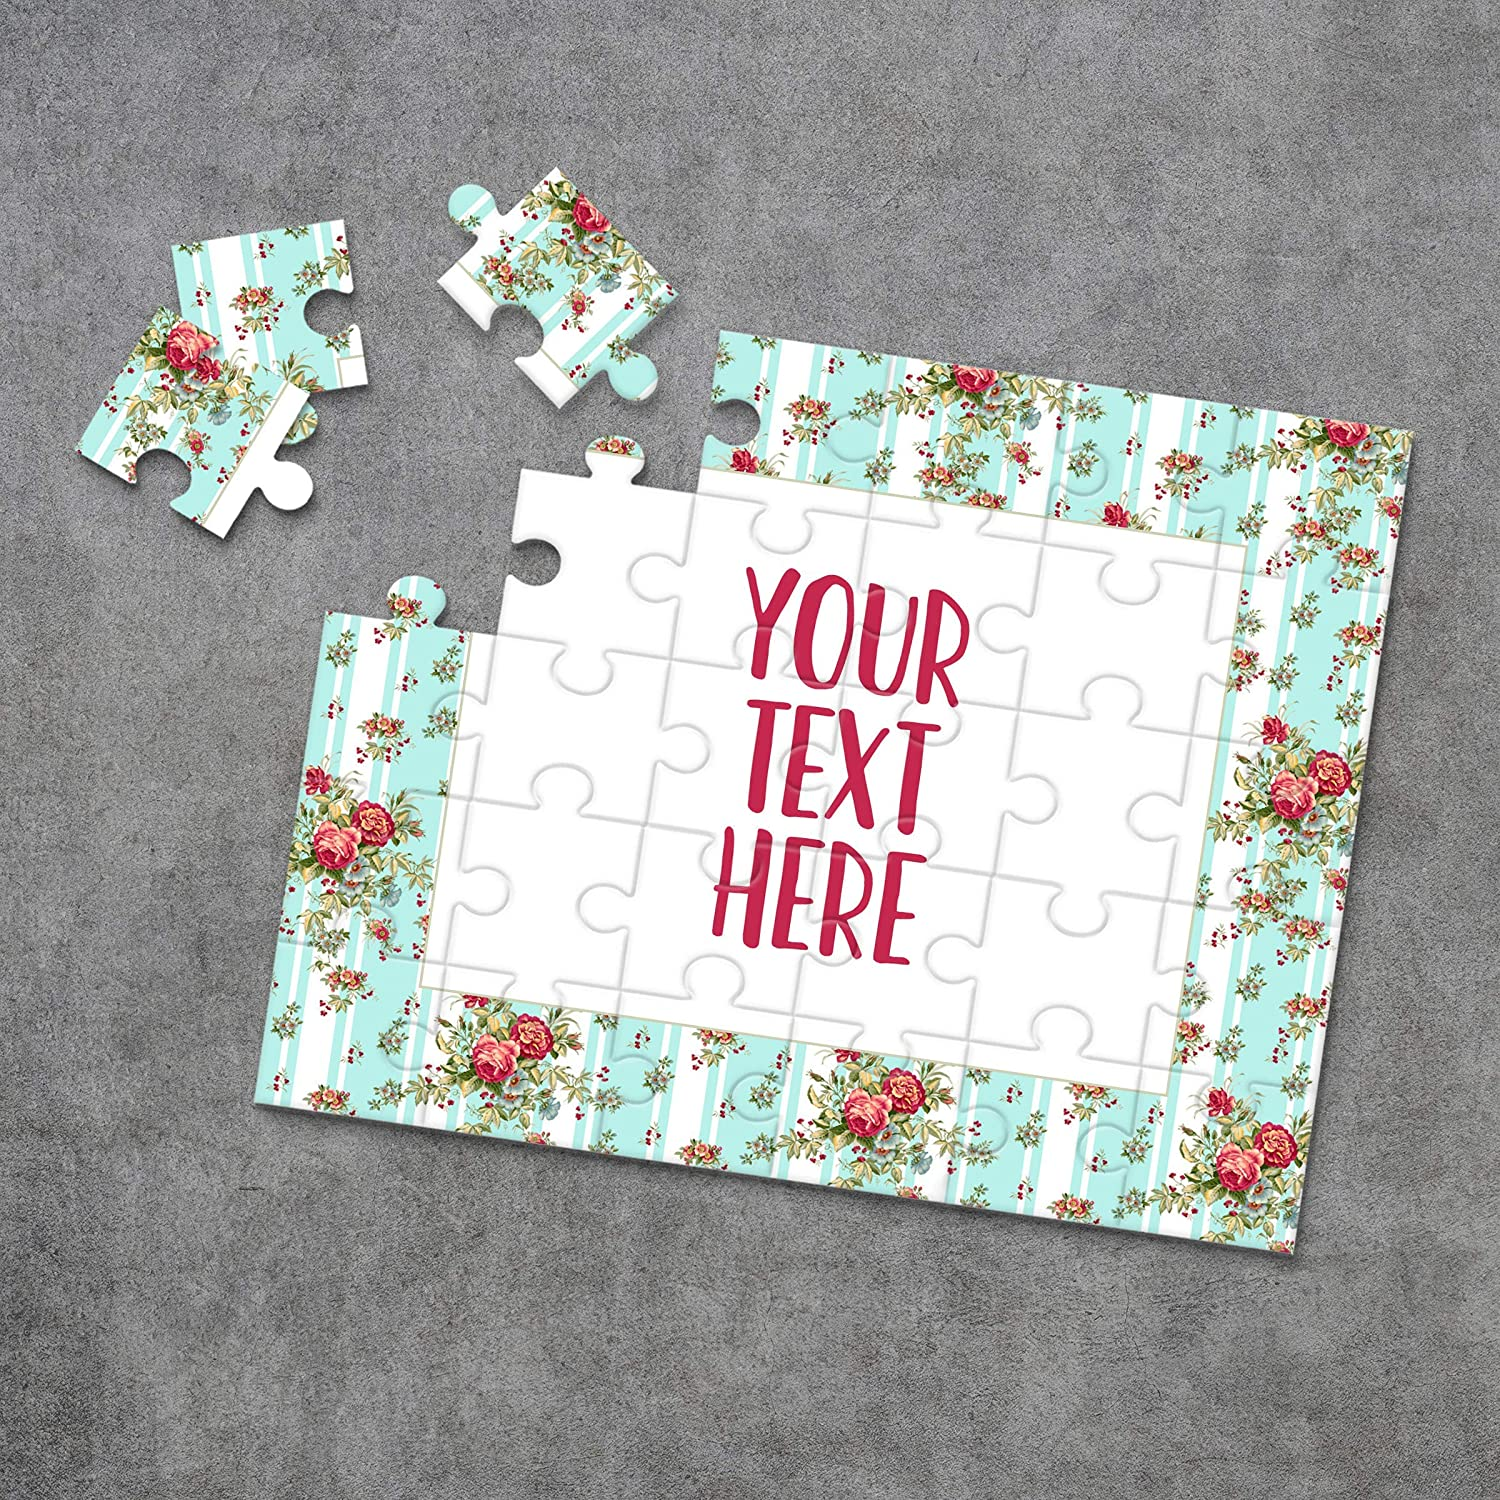 Create Your Own Puzzle Announcement Ideas Custom Puzzle CYOP0038 Personalized Puzzle Pregnancy Announcement Wedding Announcement